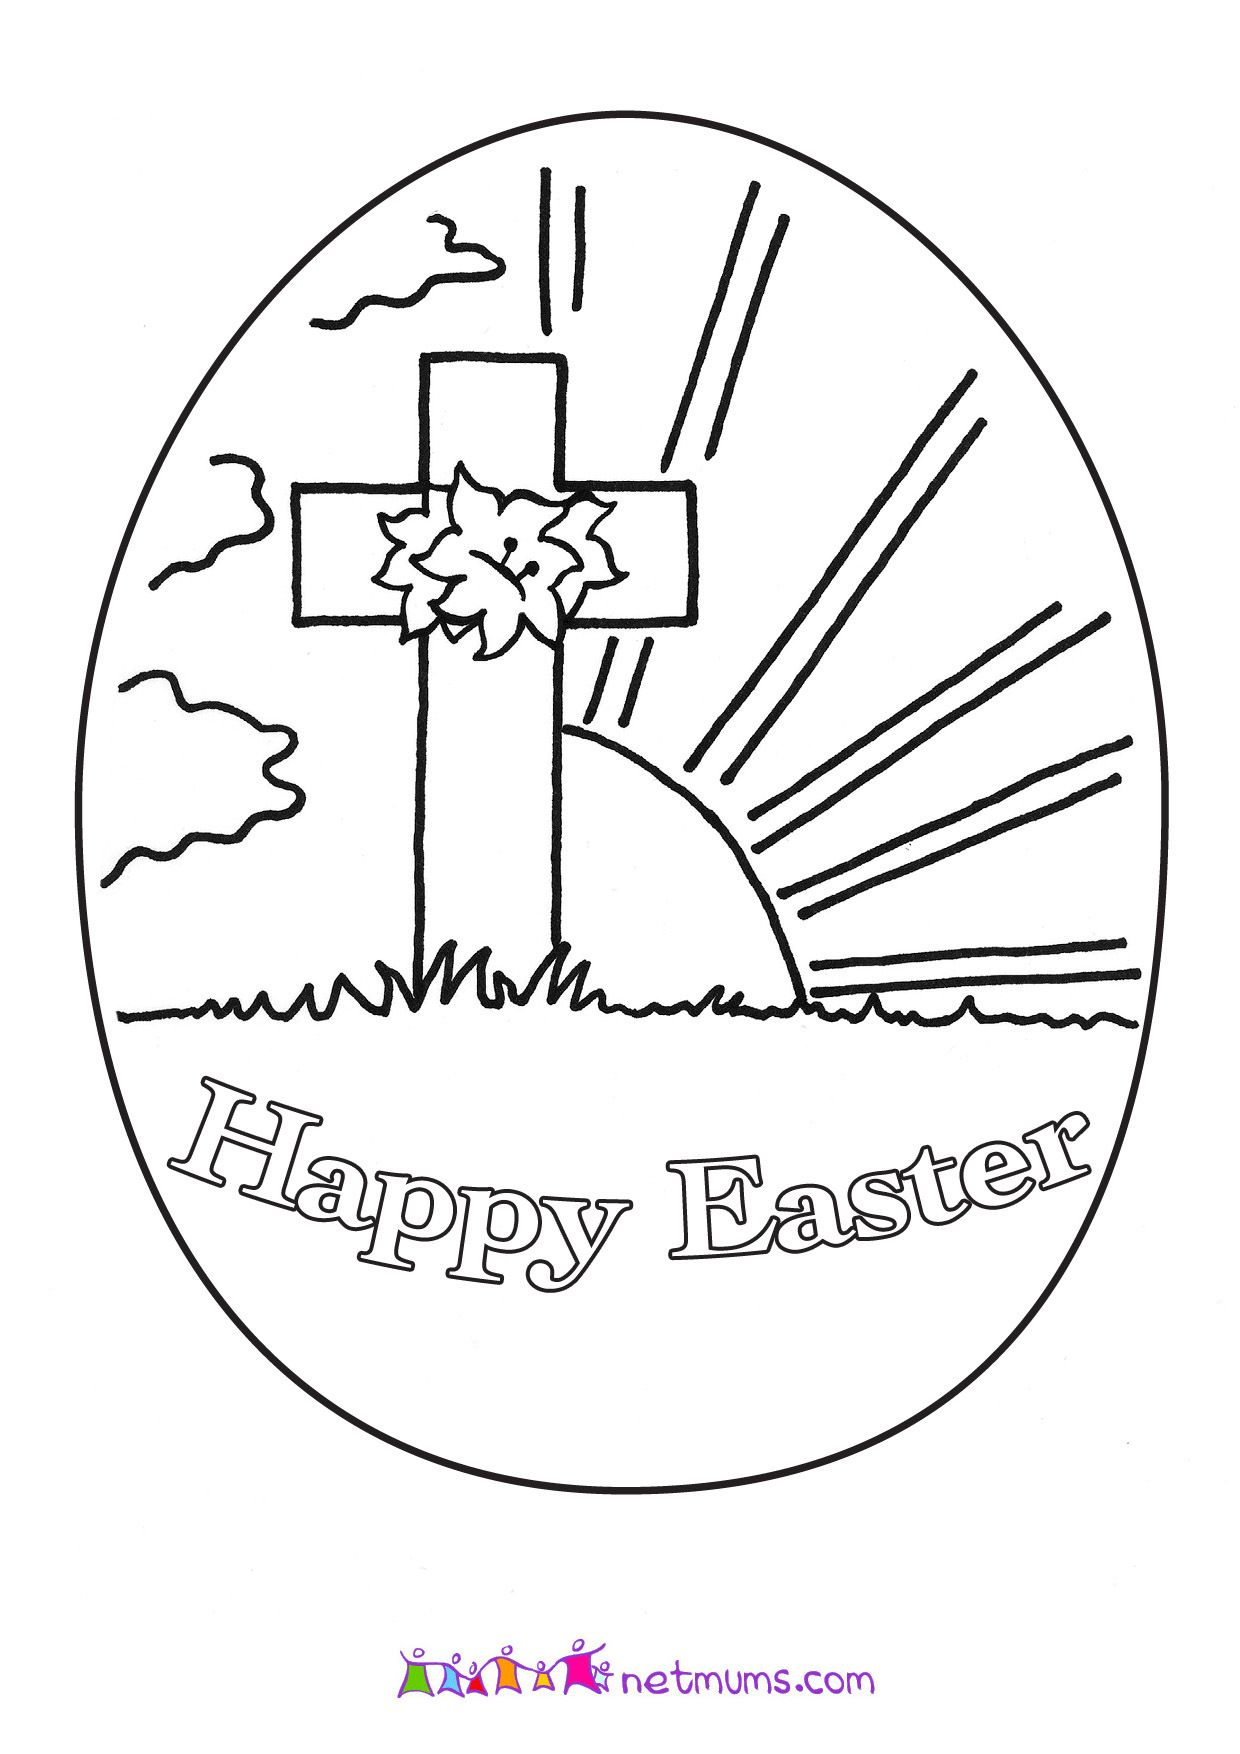 Easter Thirtyfour Jpg 1240 1754 Easter Coloring Pages Easter Coloring Pages Printable Easter Printables Free